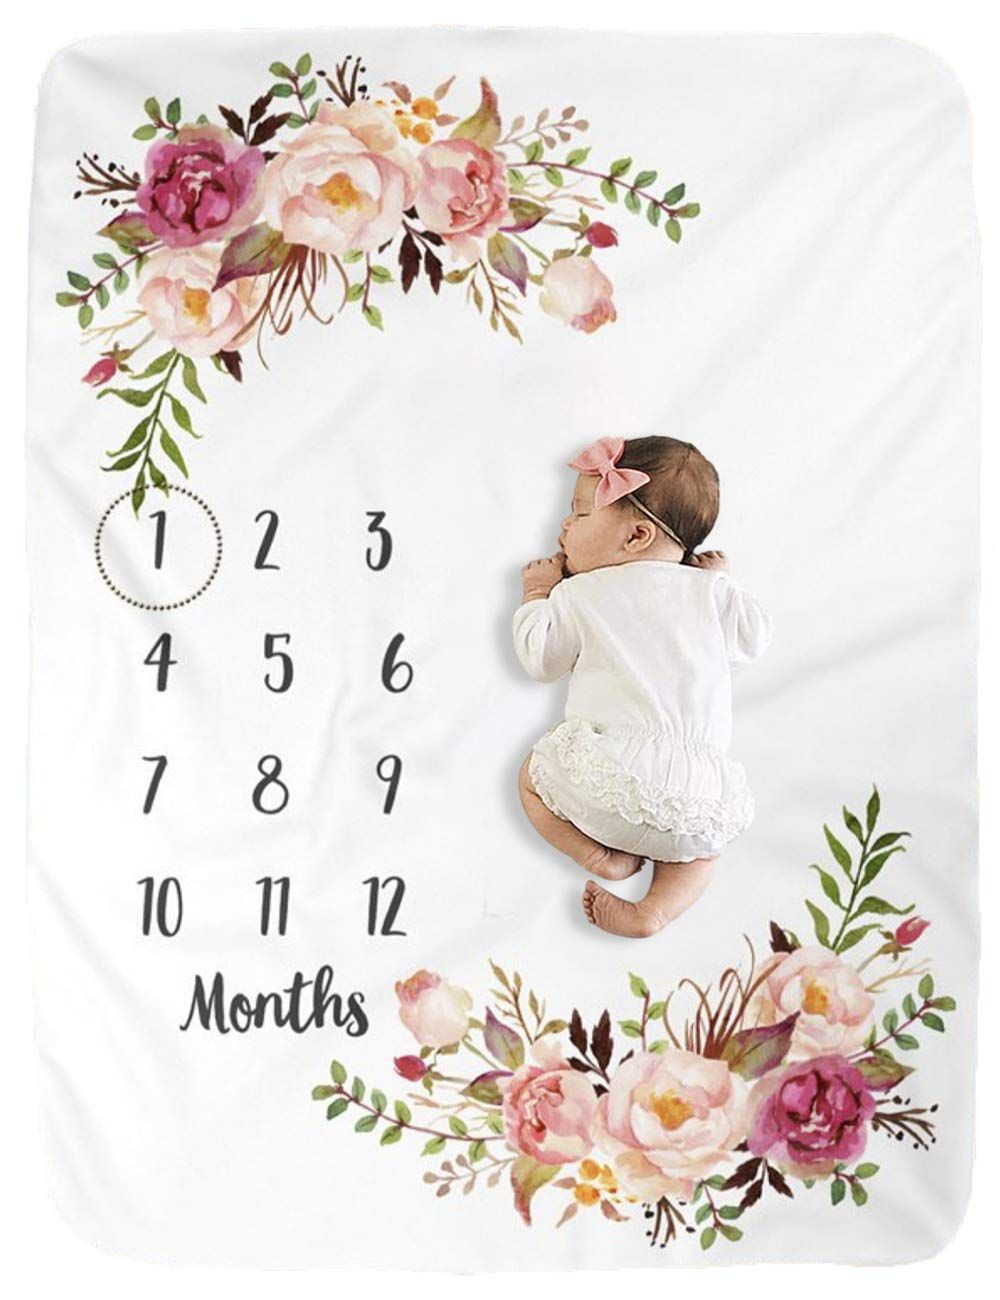 Baby Shower Gift New Baby Girl Gift Baby Girl Floral Blossom Milestones Baby Milestone Cards Baby Keepsake Baby Monthly Photo Cards